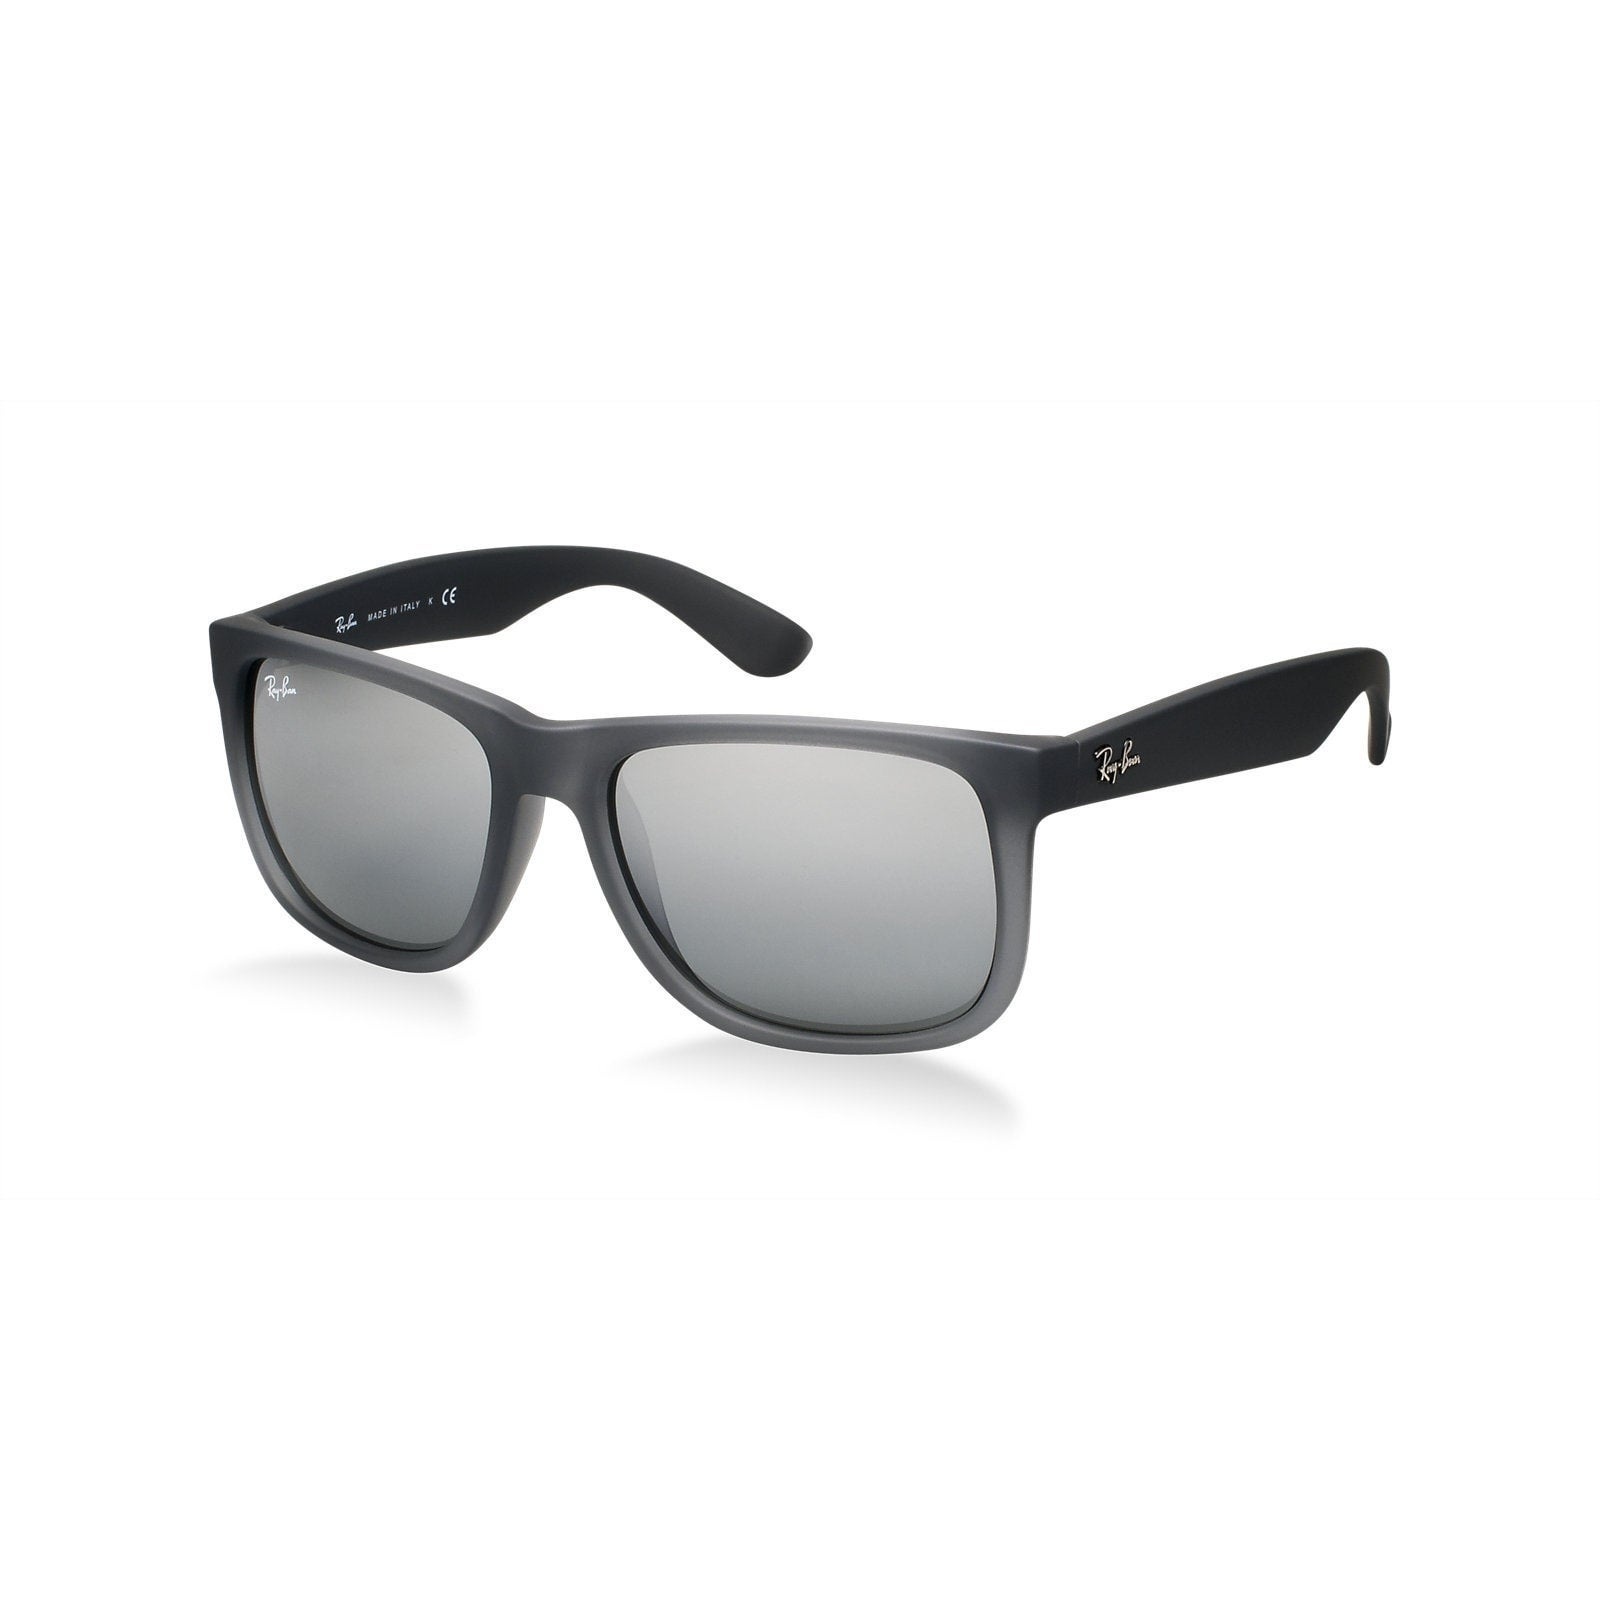 fafbfe7436 Shop Ray-Ban Justin Classic RB4165 Men s Matte Grey Frame Silver Gradient  Mirror 51mm Lens Sunglasses - Free Shipping Today - Overstock - 15298633